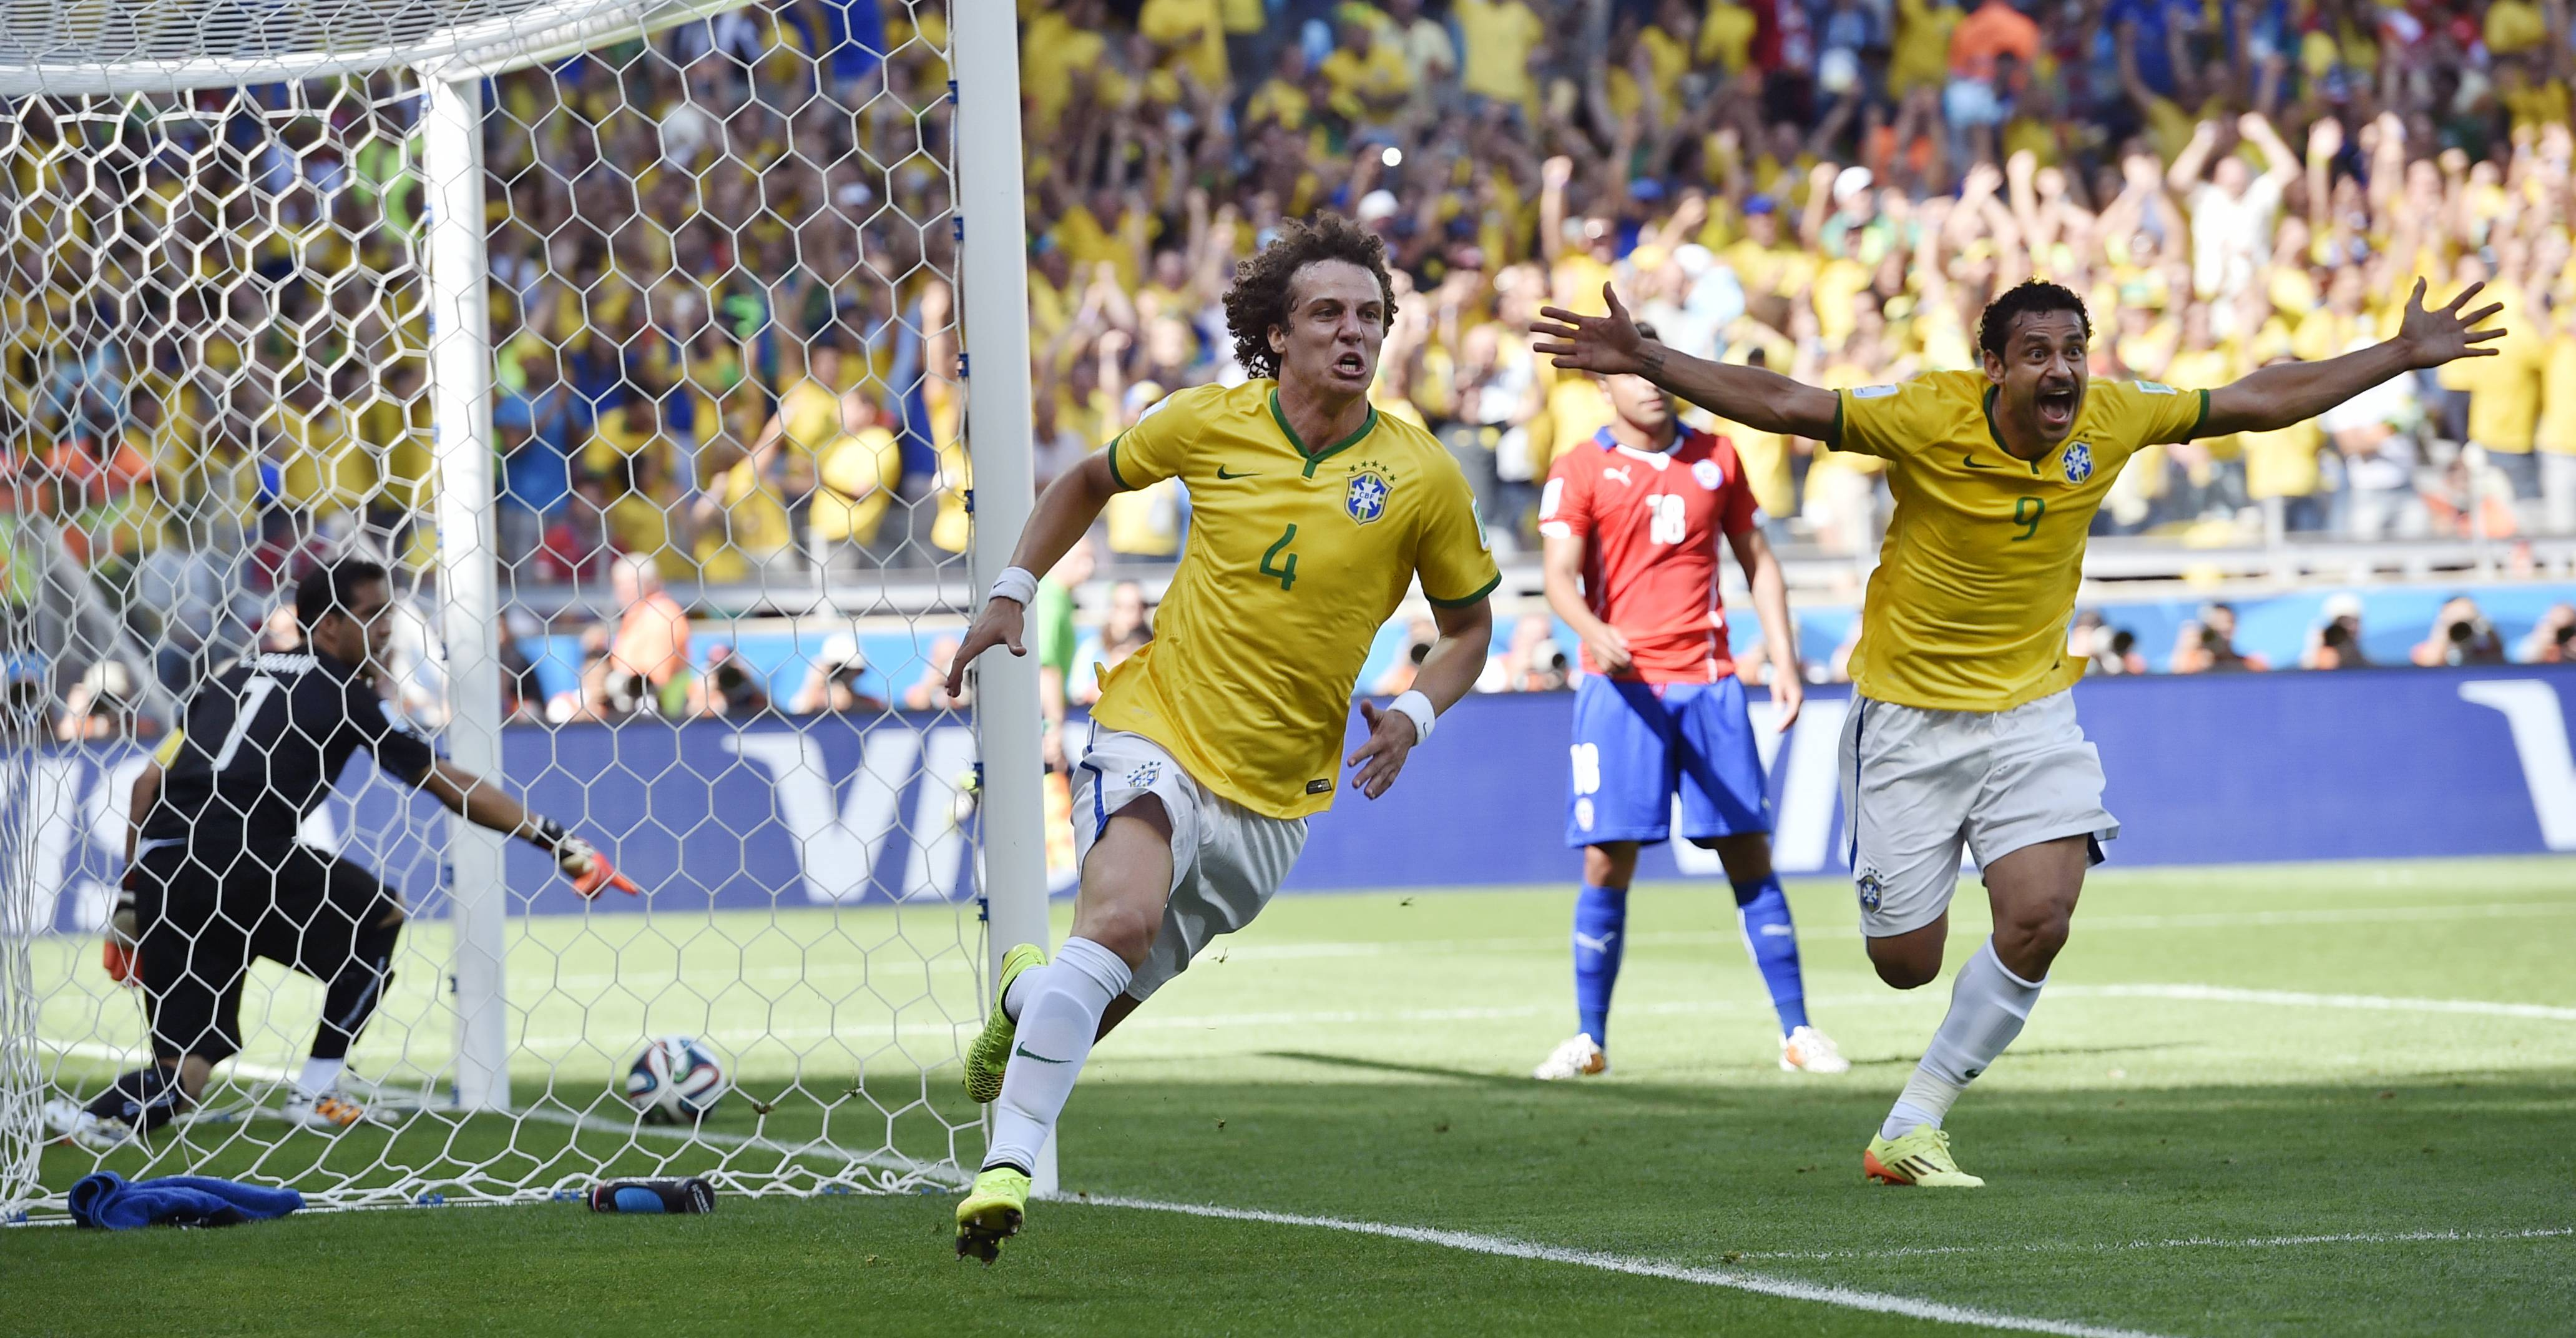 Brazil's David Luiz, left, and Fred celebrate after Brazil's opening goal during the World Cup round of 16 soccer match between Brazil and Chile at the Mineirao Stadium in Belo Horizonte, Brazil, Saturday.